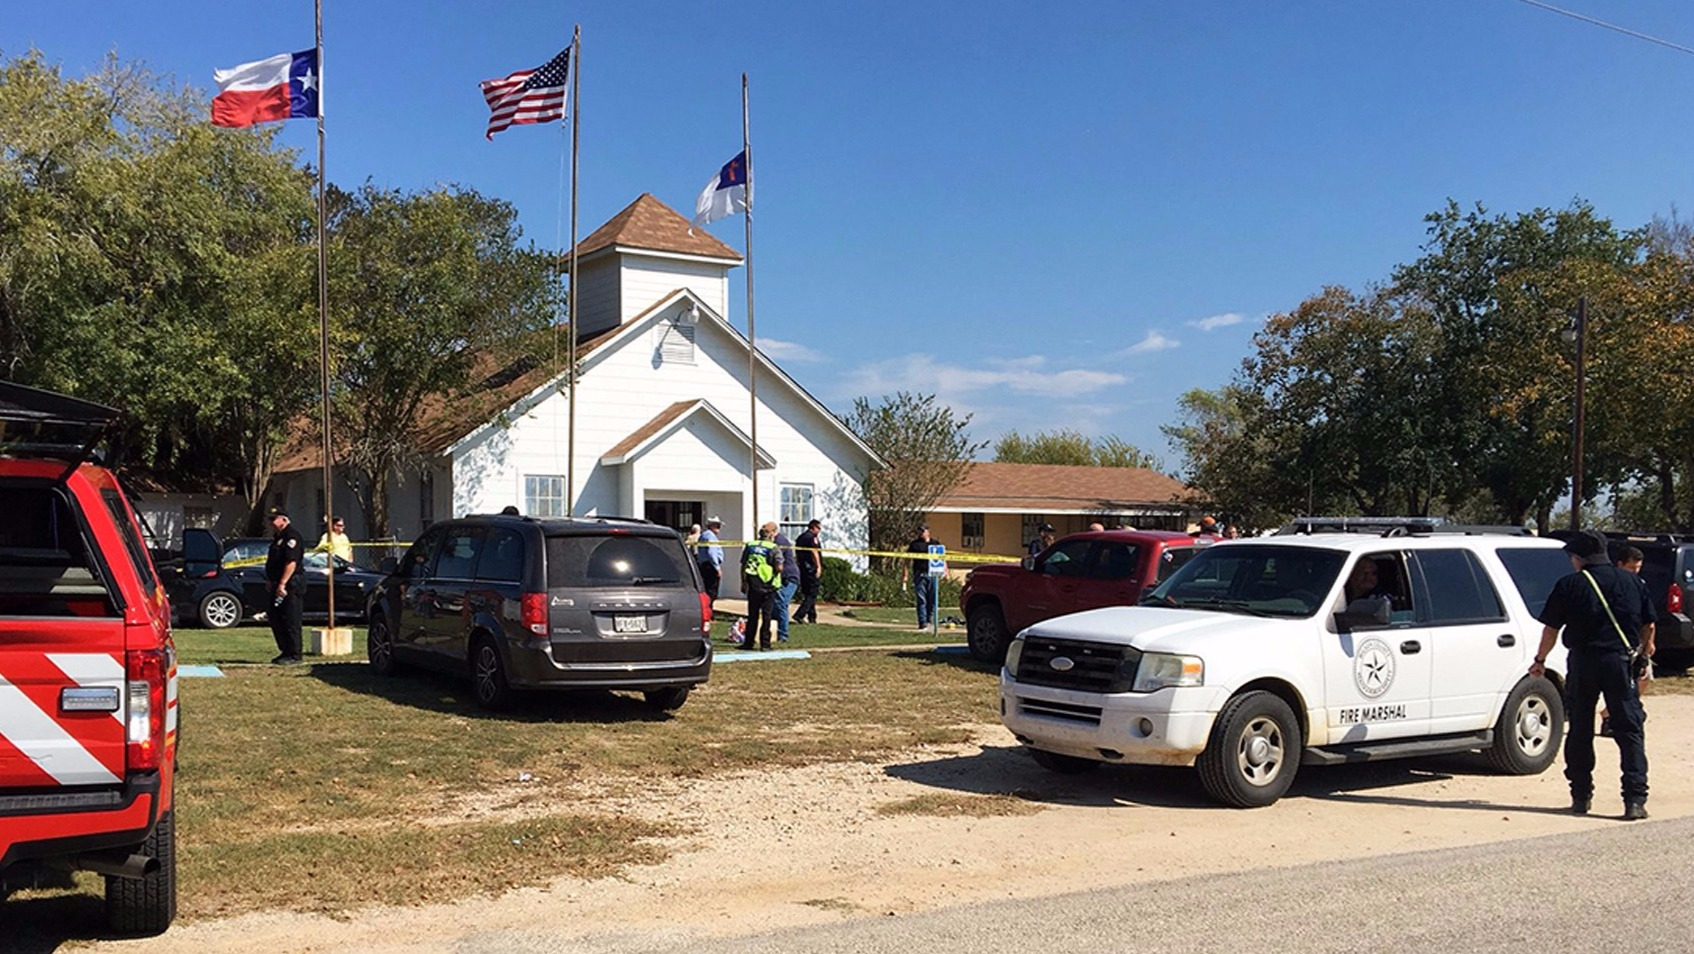 TEXAS HORROR: Two-year-old toddler among at least 27 dead